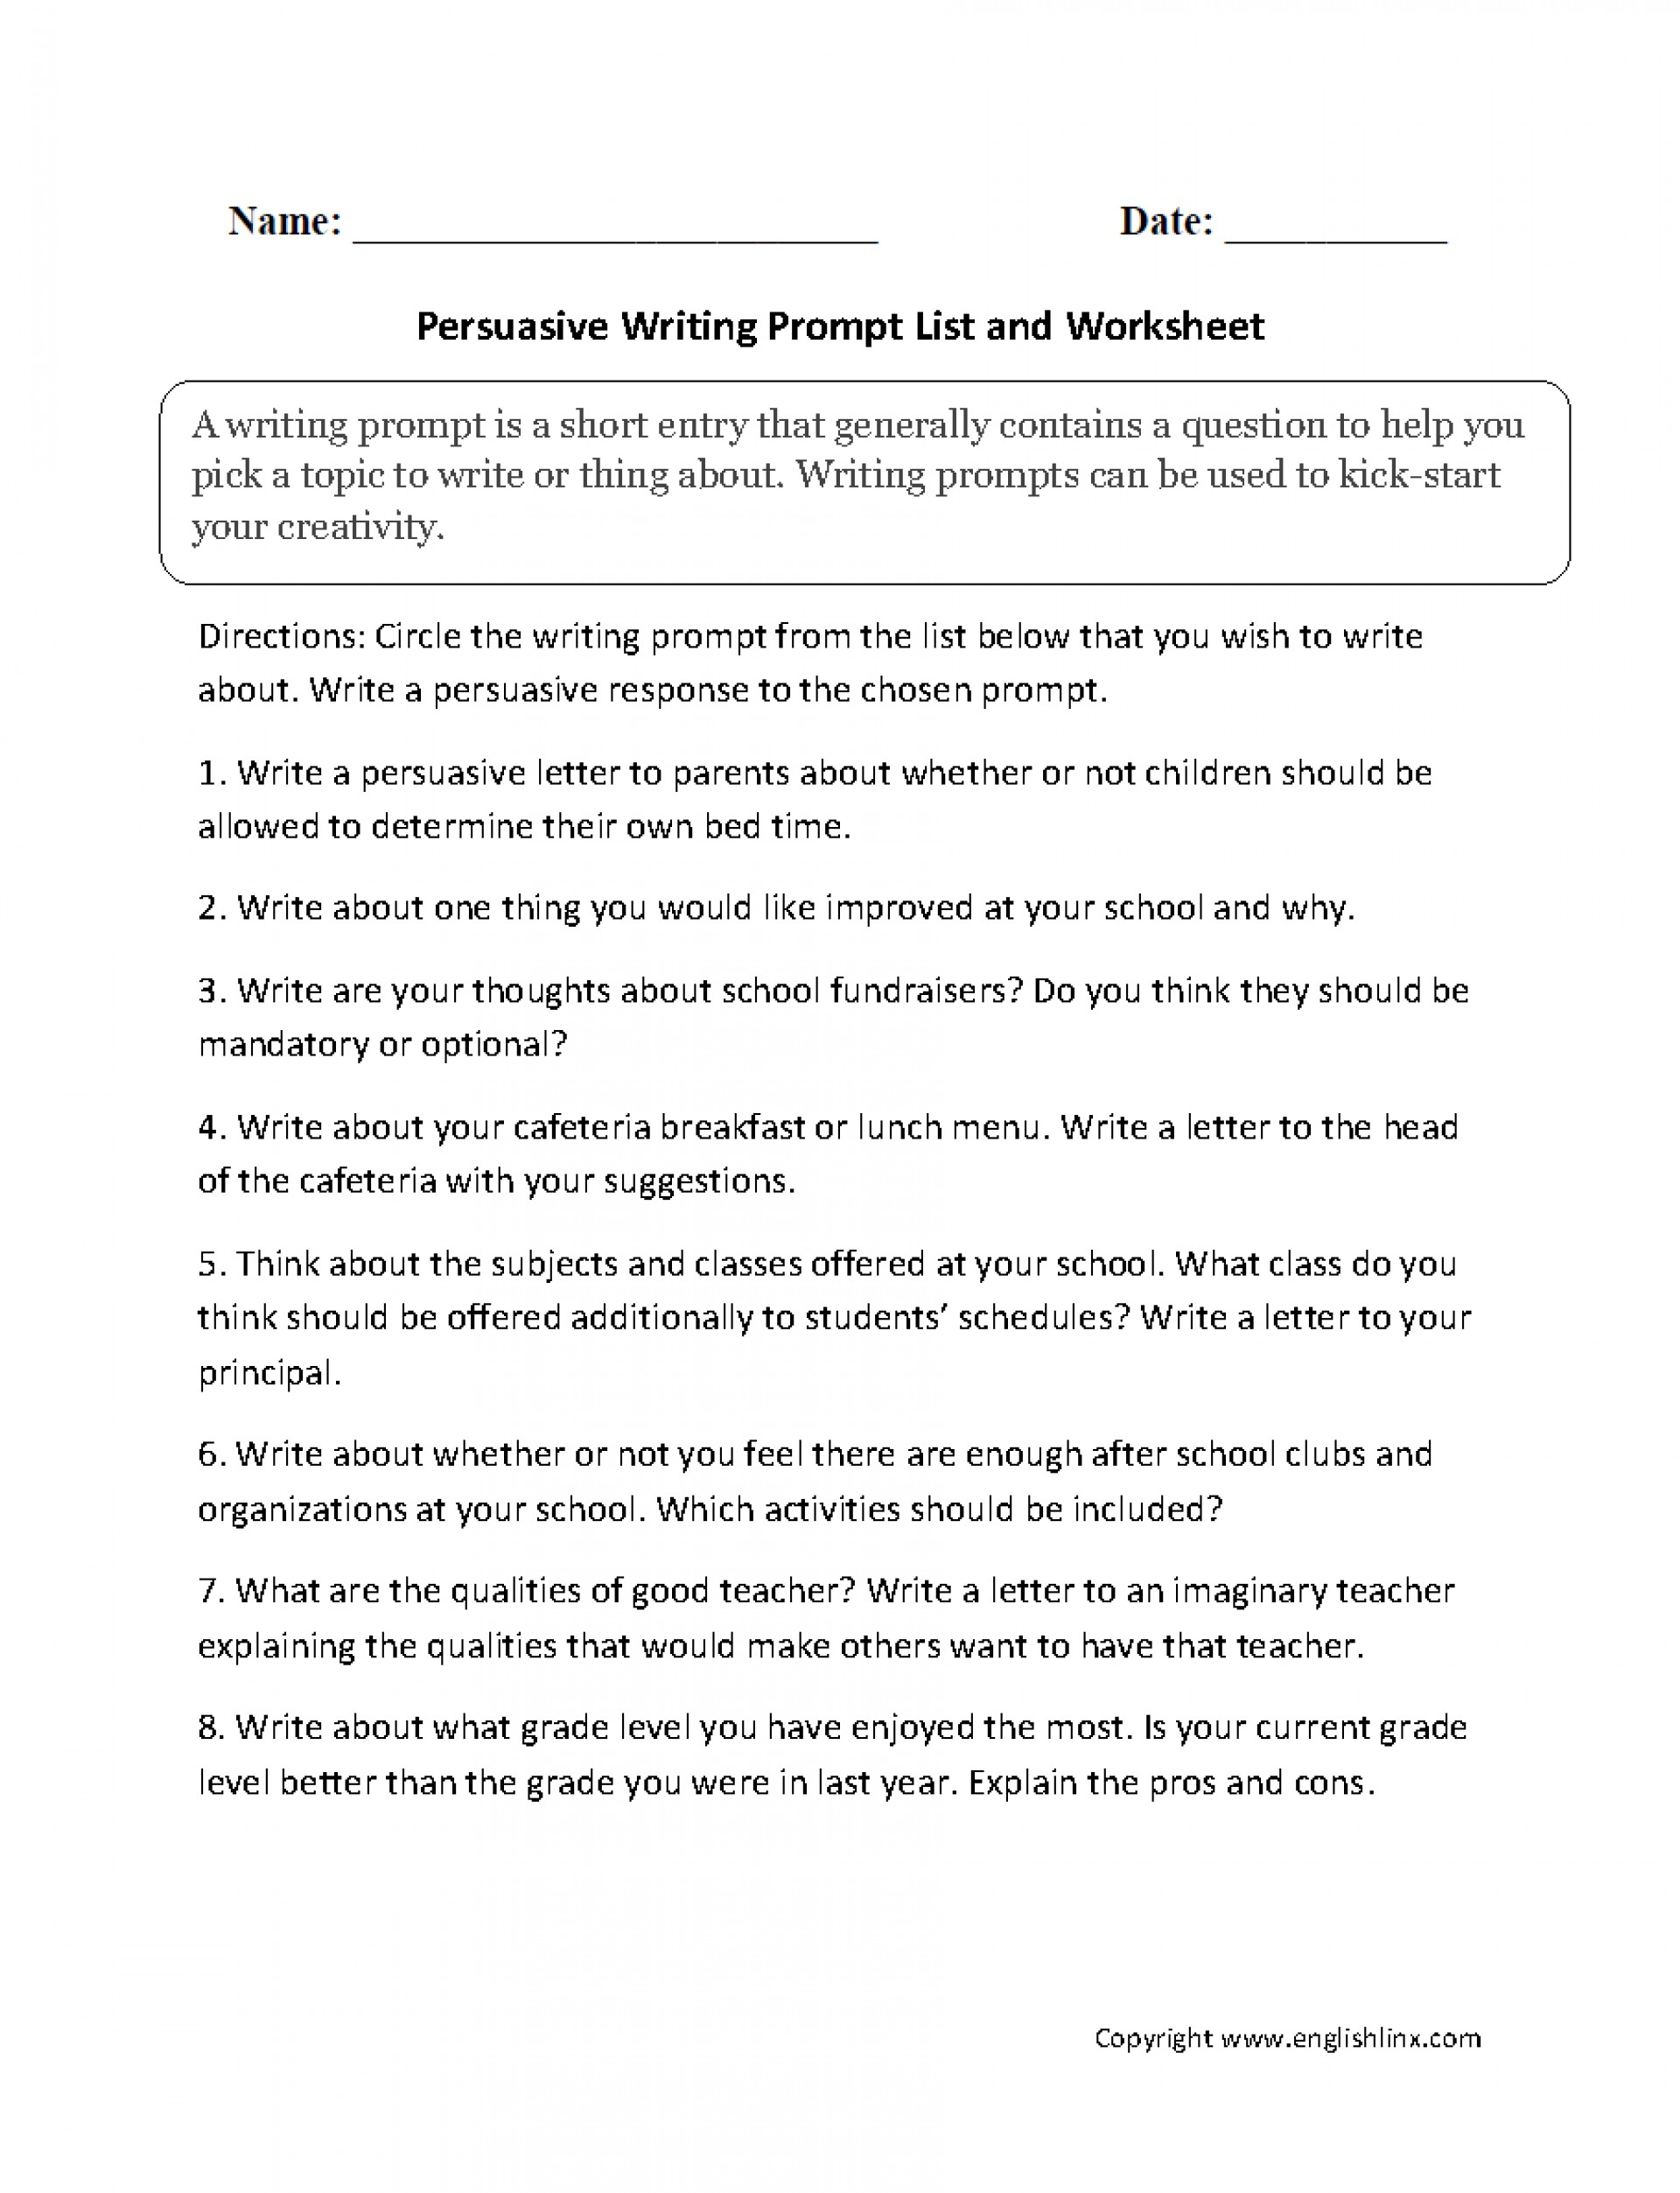 005 Persuasive Writing Prompt List Essay Prompts Formidable Narrative For Middle School 5 Paragraph 5th Grade 1920